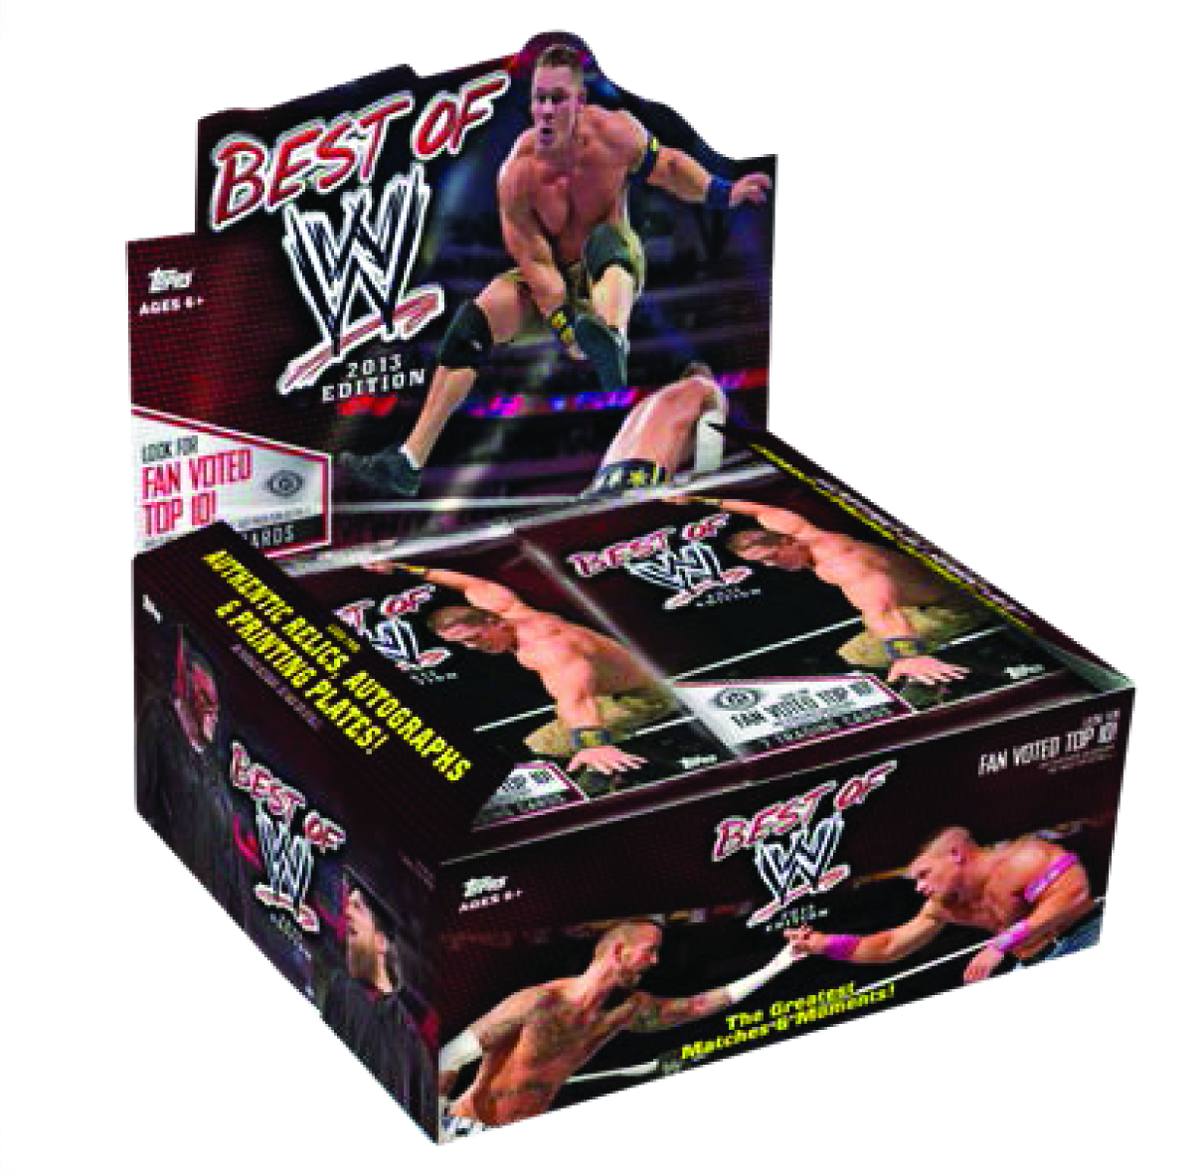 TOPPS 2013 BEST OF WWE T/C BOX